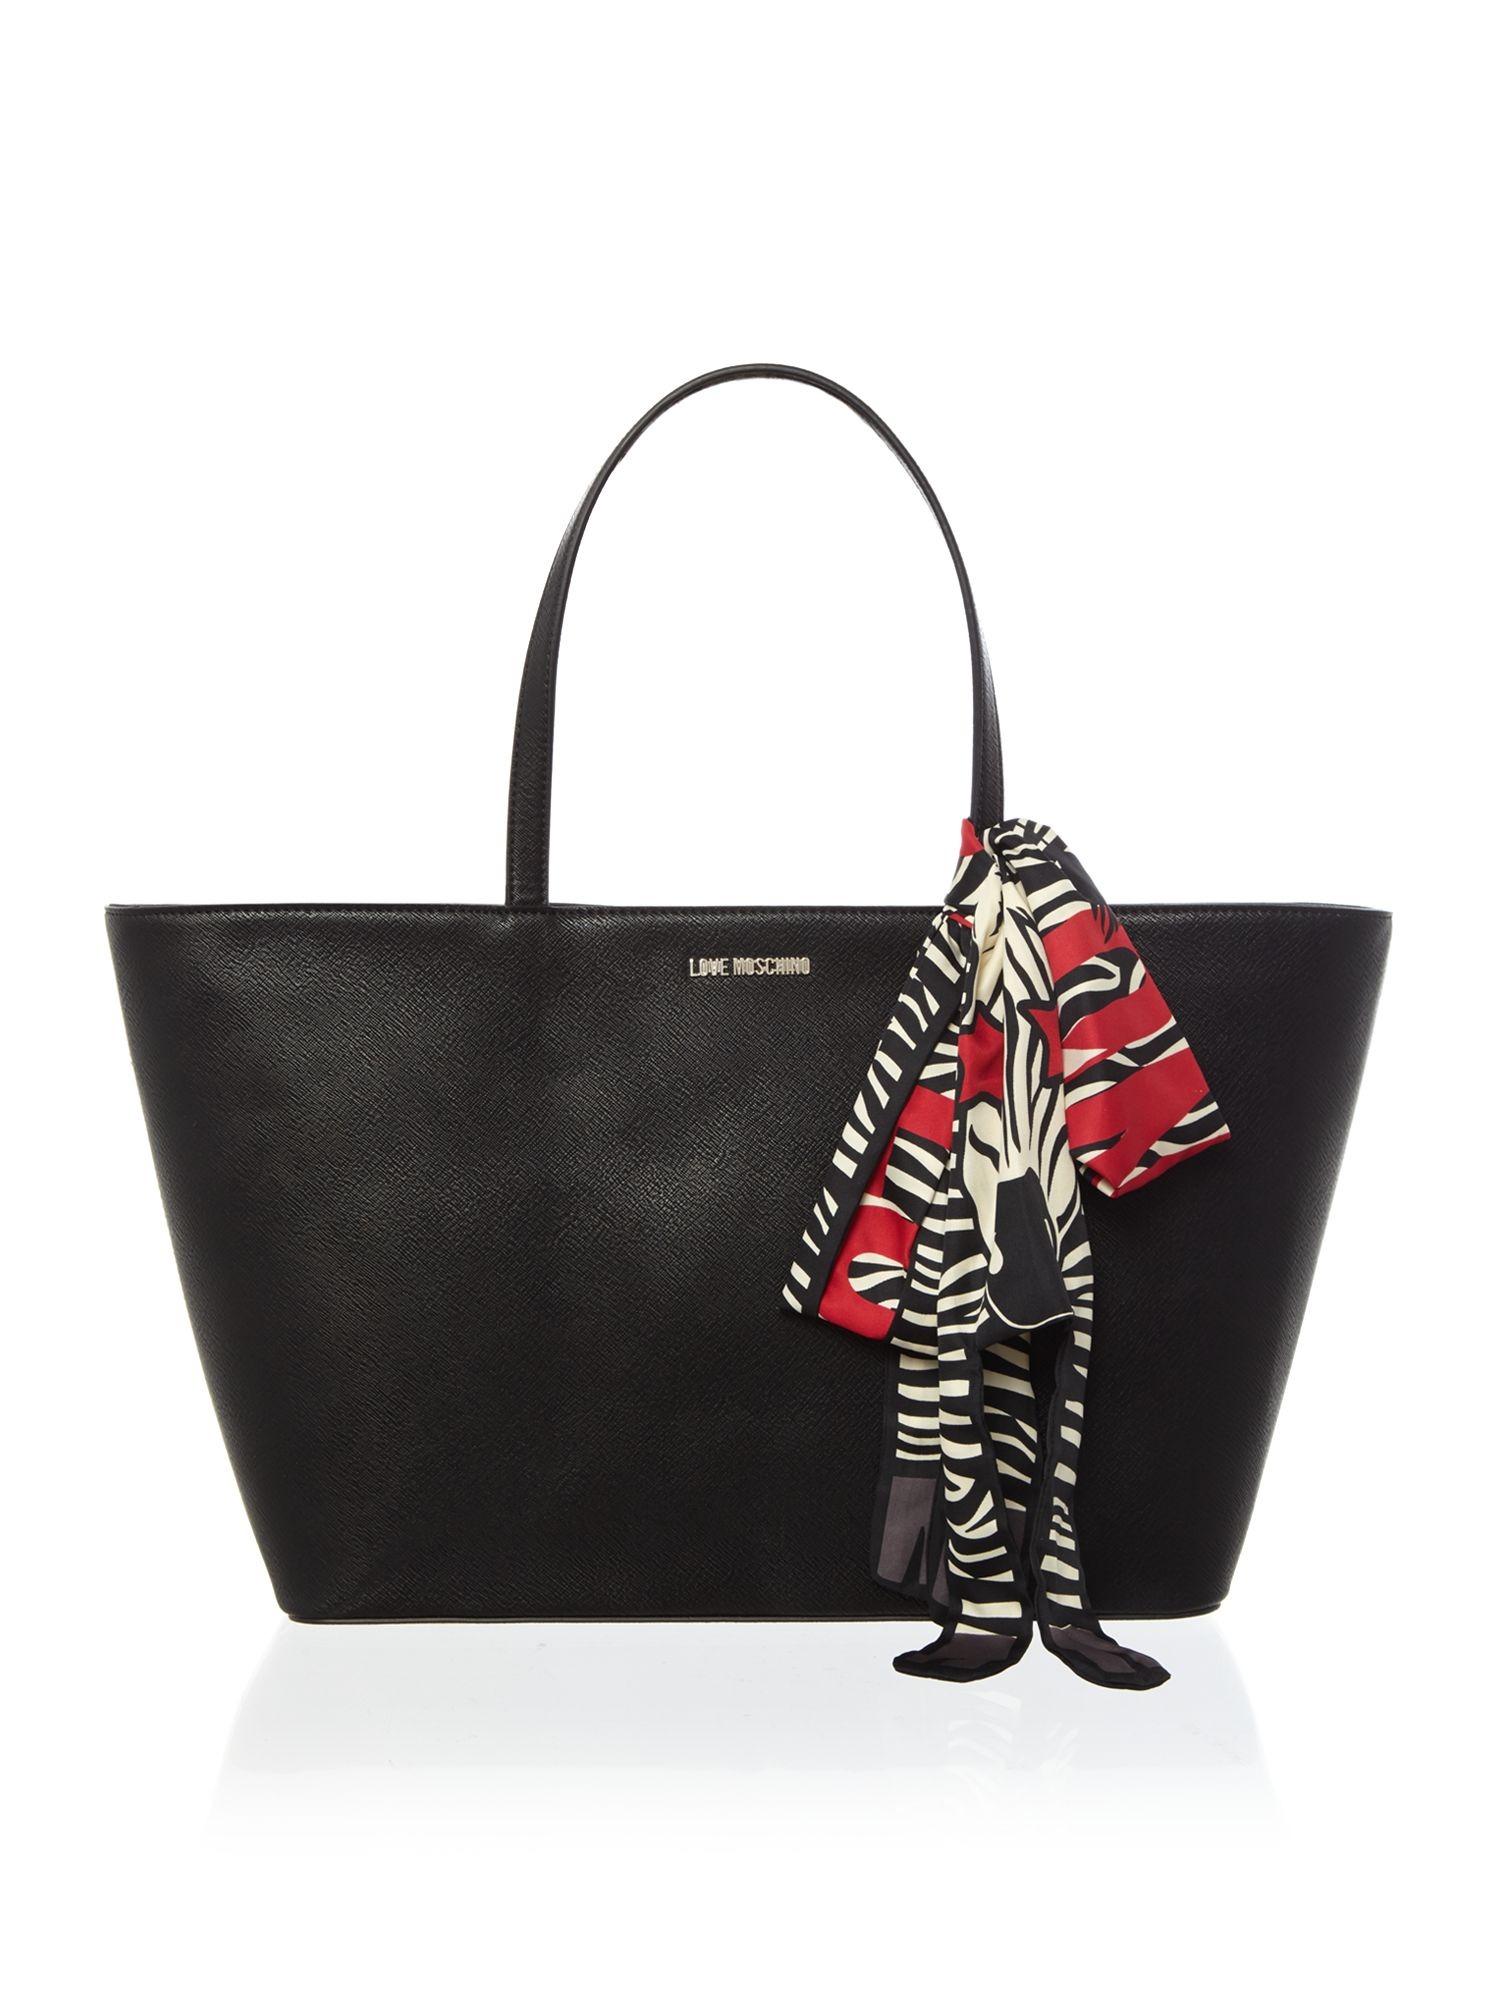 Love Moschino Animal scarf tote bag Black